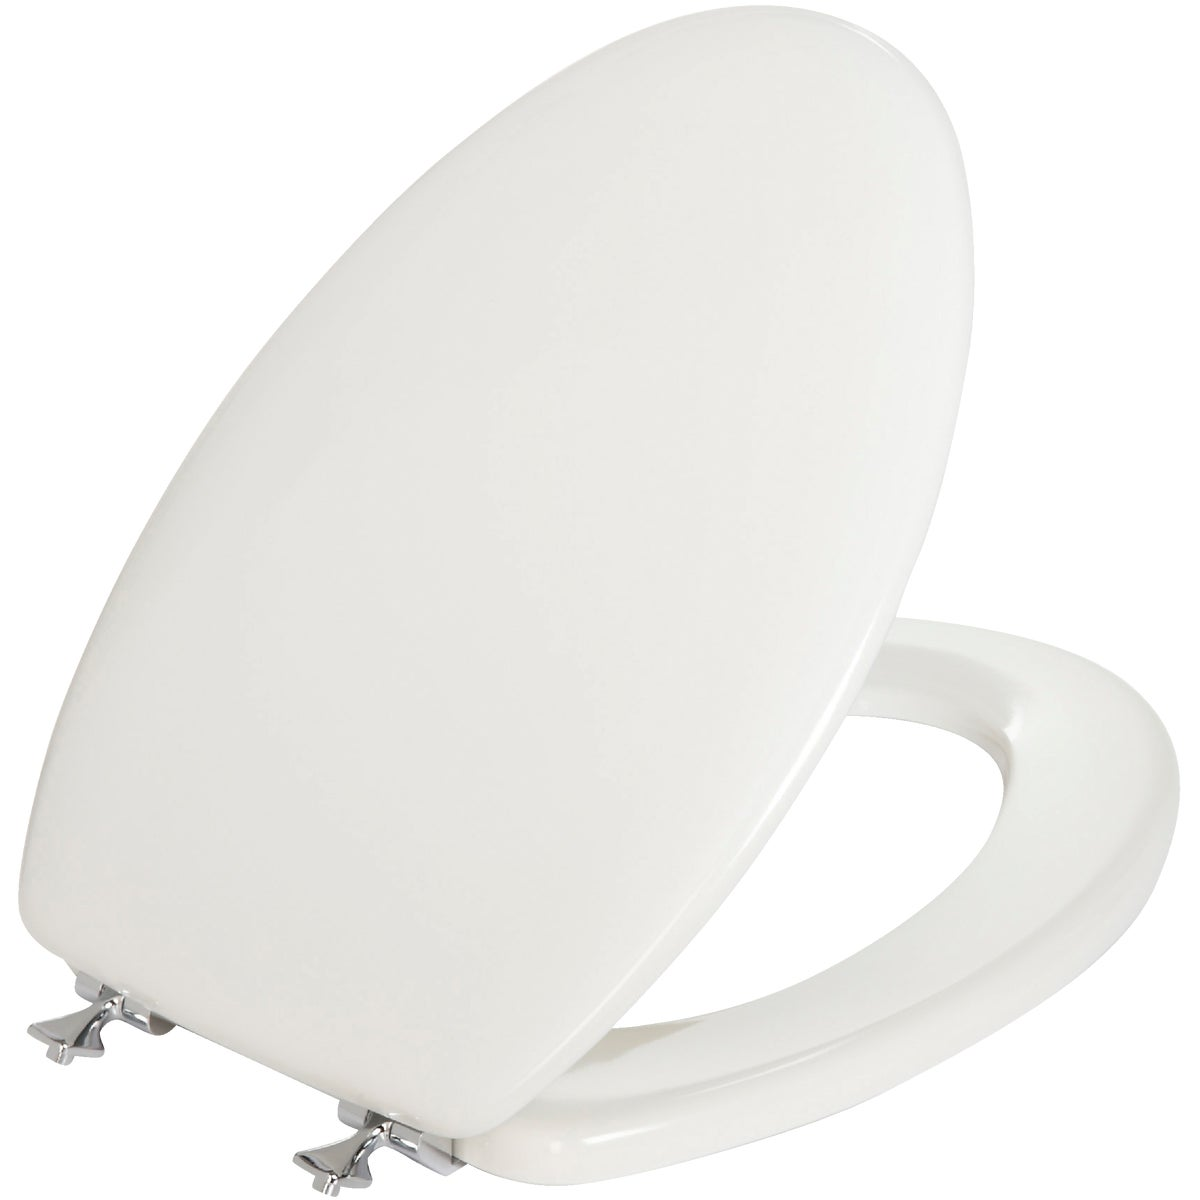 WHITE WOOD ELONG SEAT